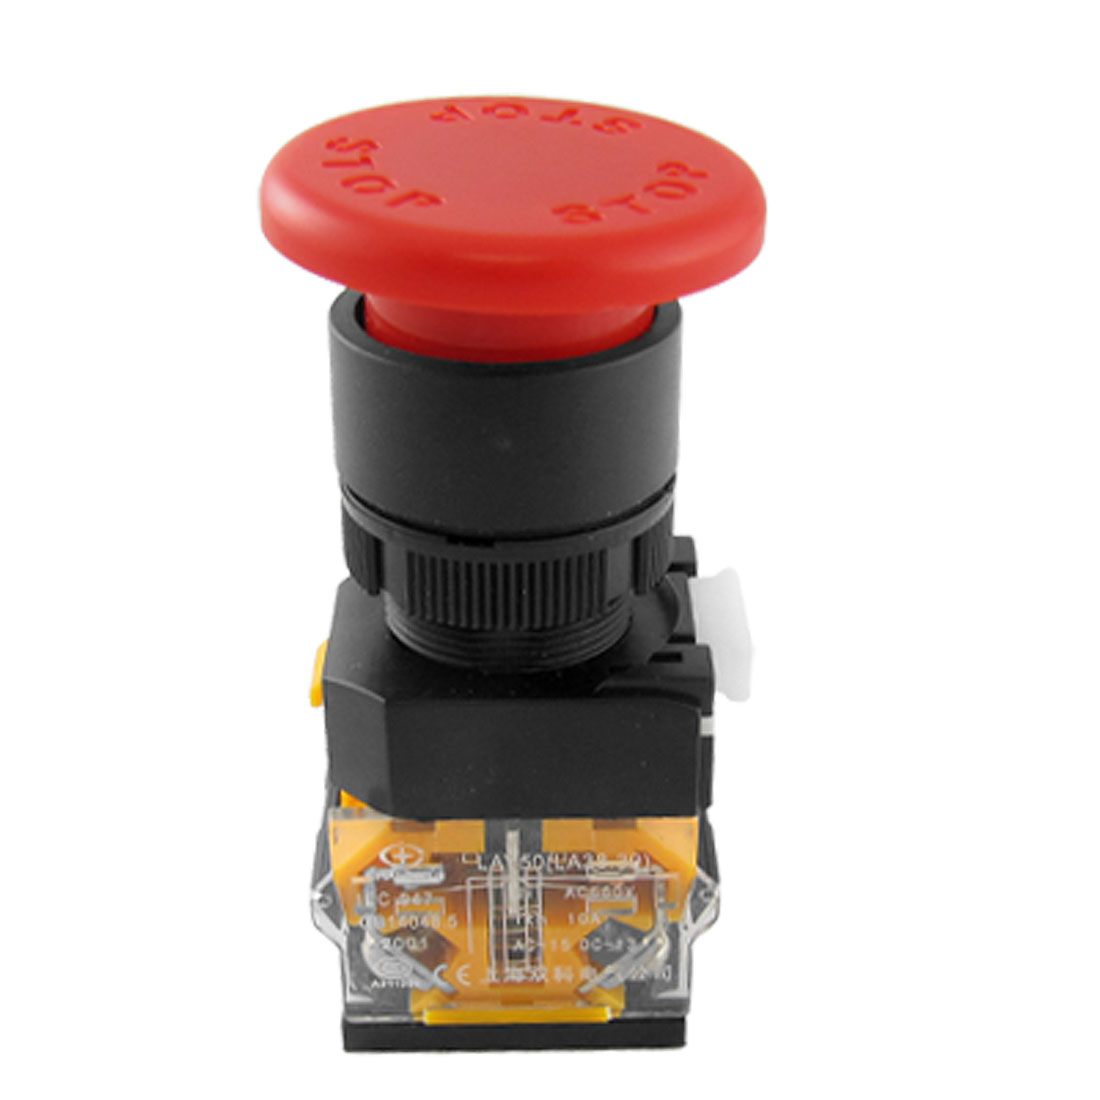 40mm Red Sign Momentary Mushroom Push Button Switch 1 NO NO 1 NC N/C 10A 660V AC